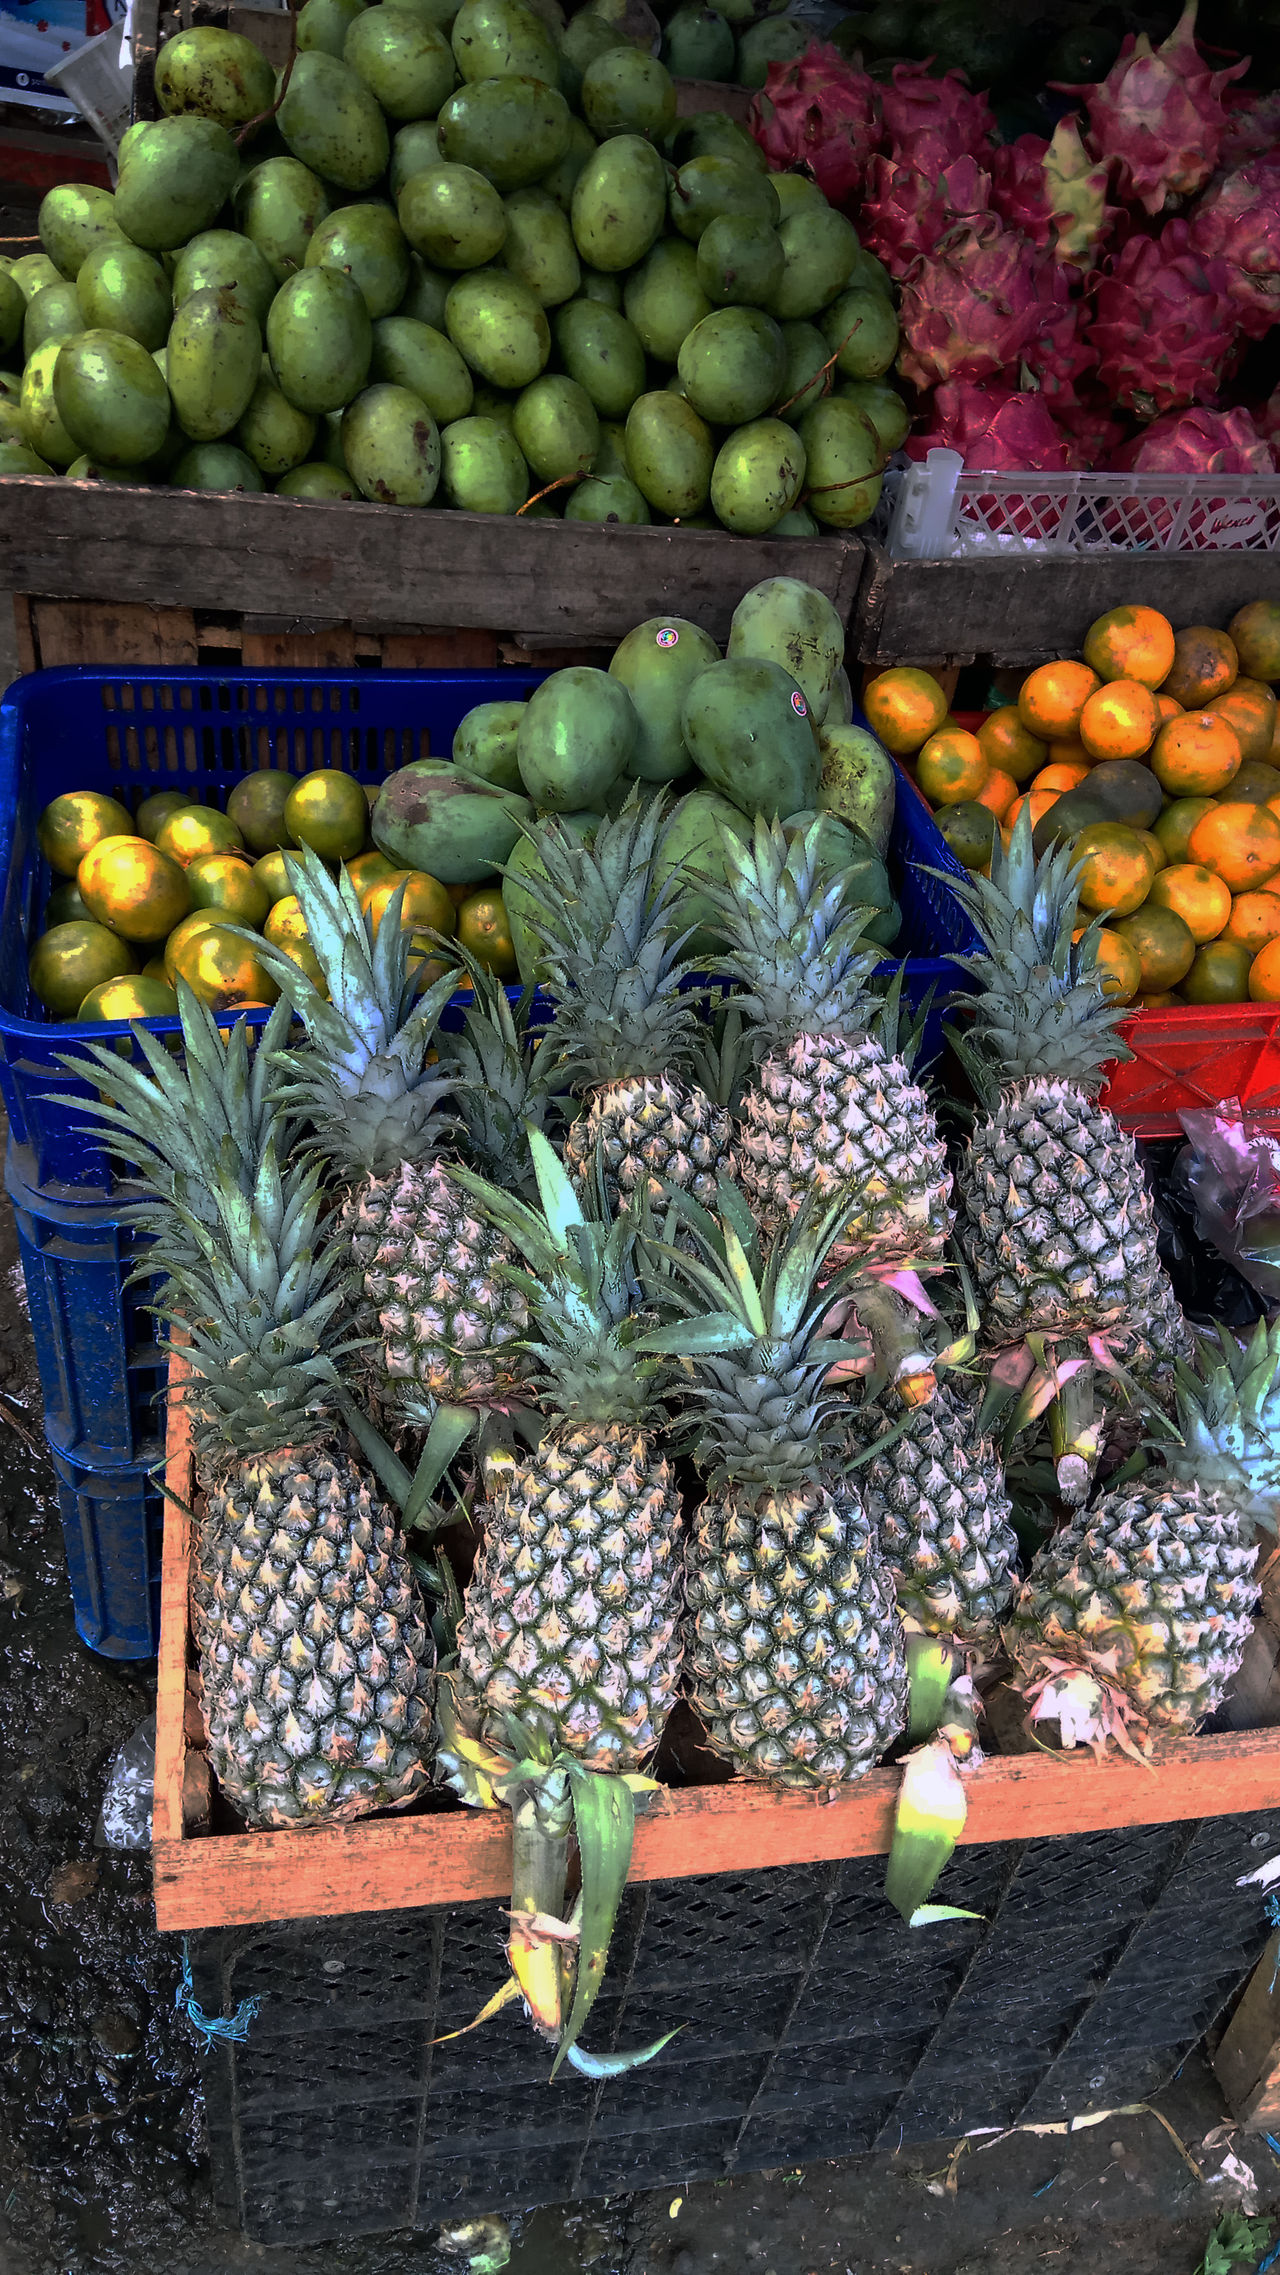 Fruits in traditional markets Abundance Artichoke Choice Day Food Food And Drink For Sale Freshness Fruit Healthy Eating Large Group Of Objects Market No People Outdoors Pineapple Retail  Streetphotography Variation Vegetable